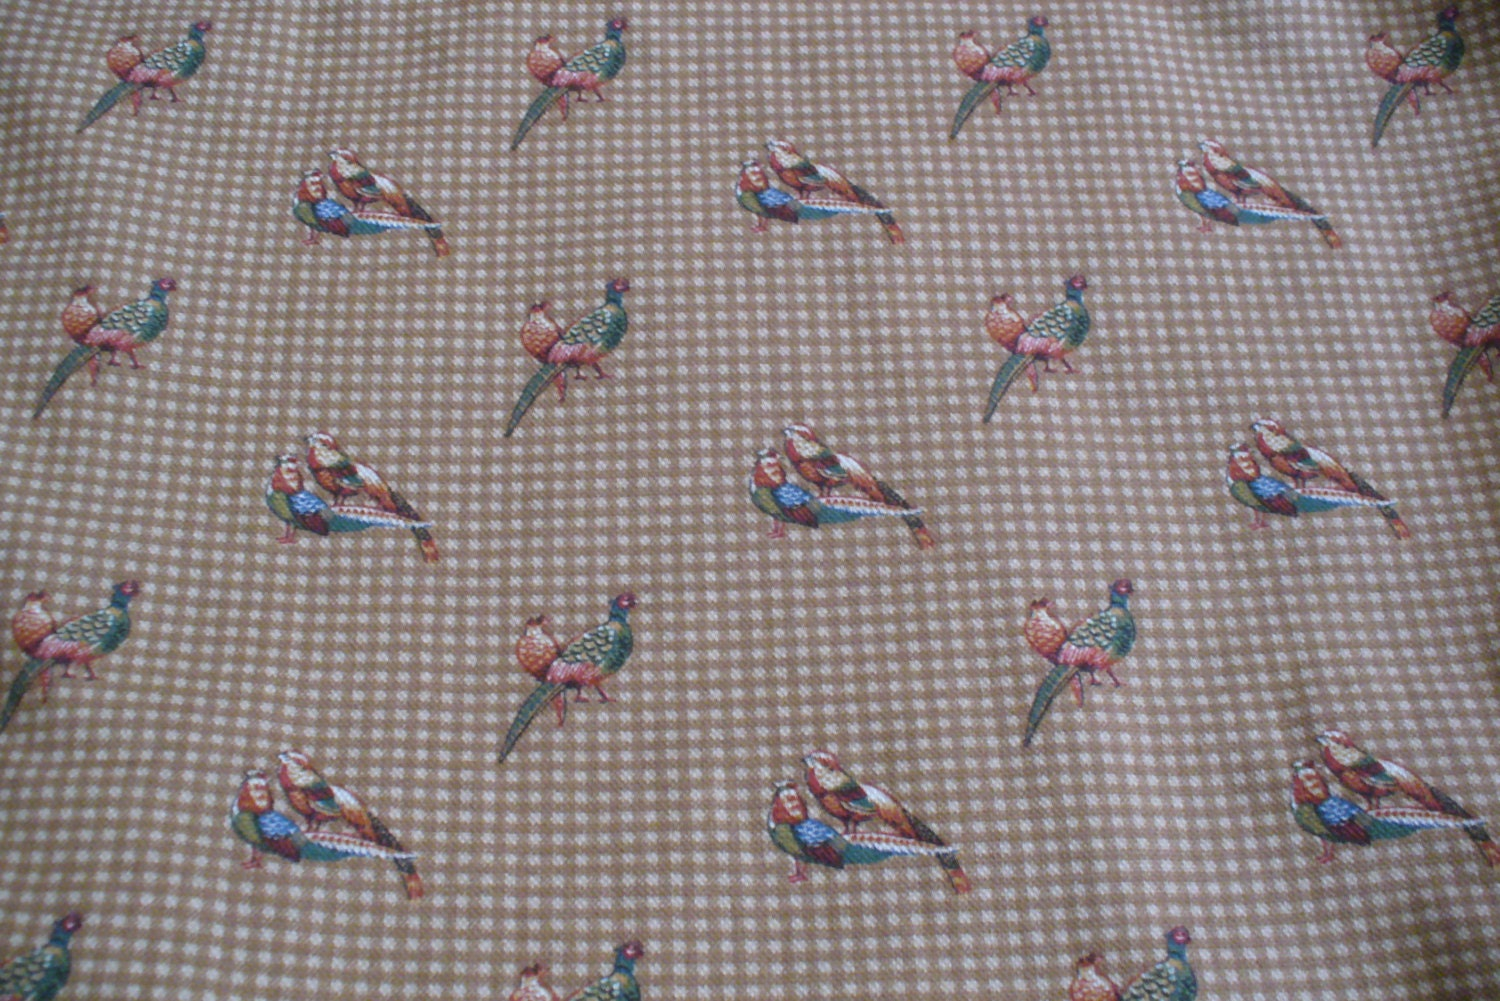 Home Decor Fabrics By The Yard: Fabric By The Yard Home Decor Fabric Drapery Fabric Birds